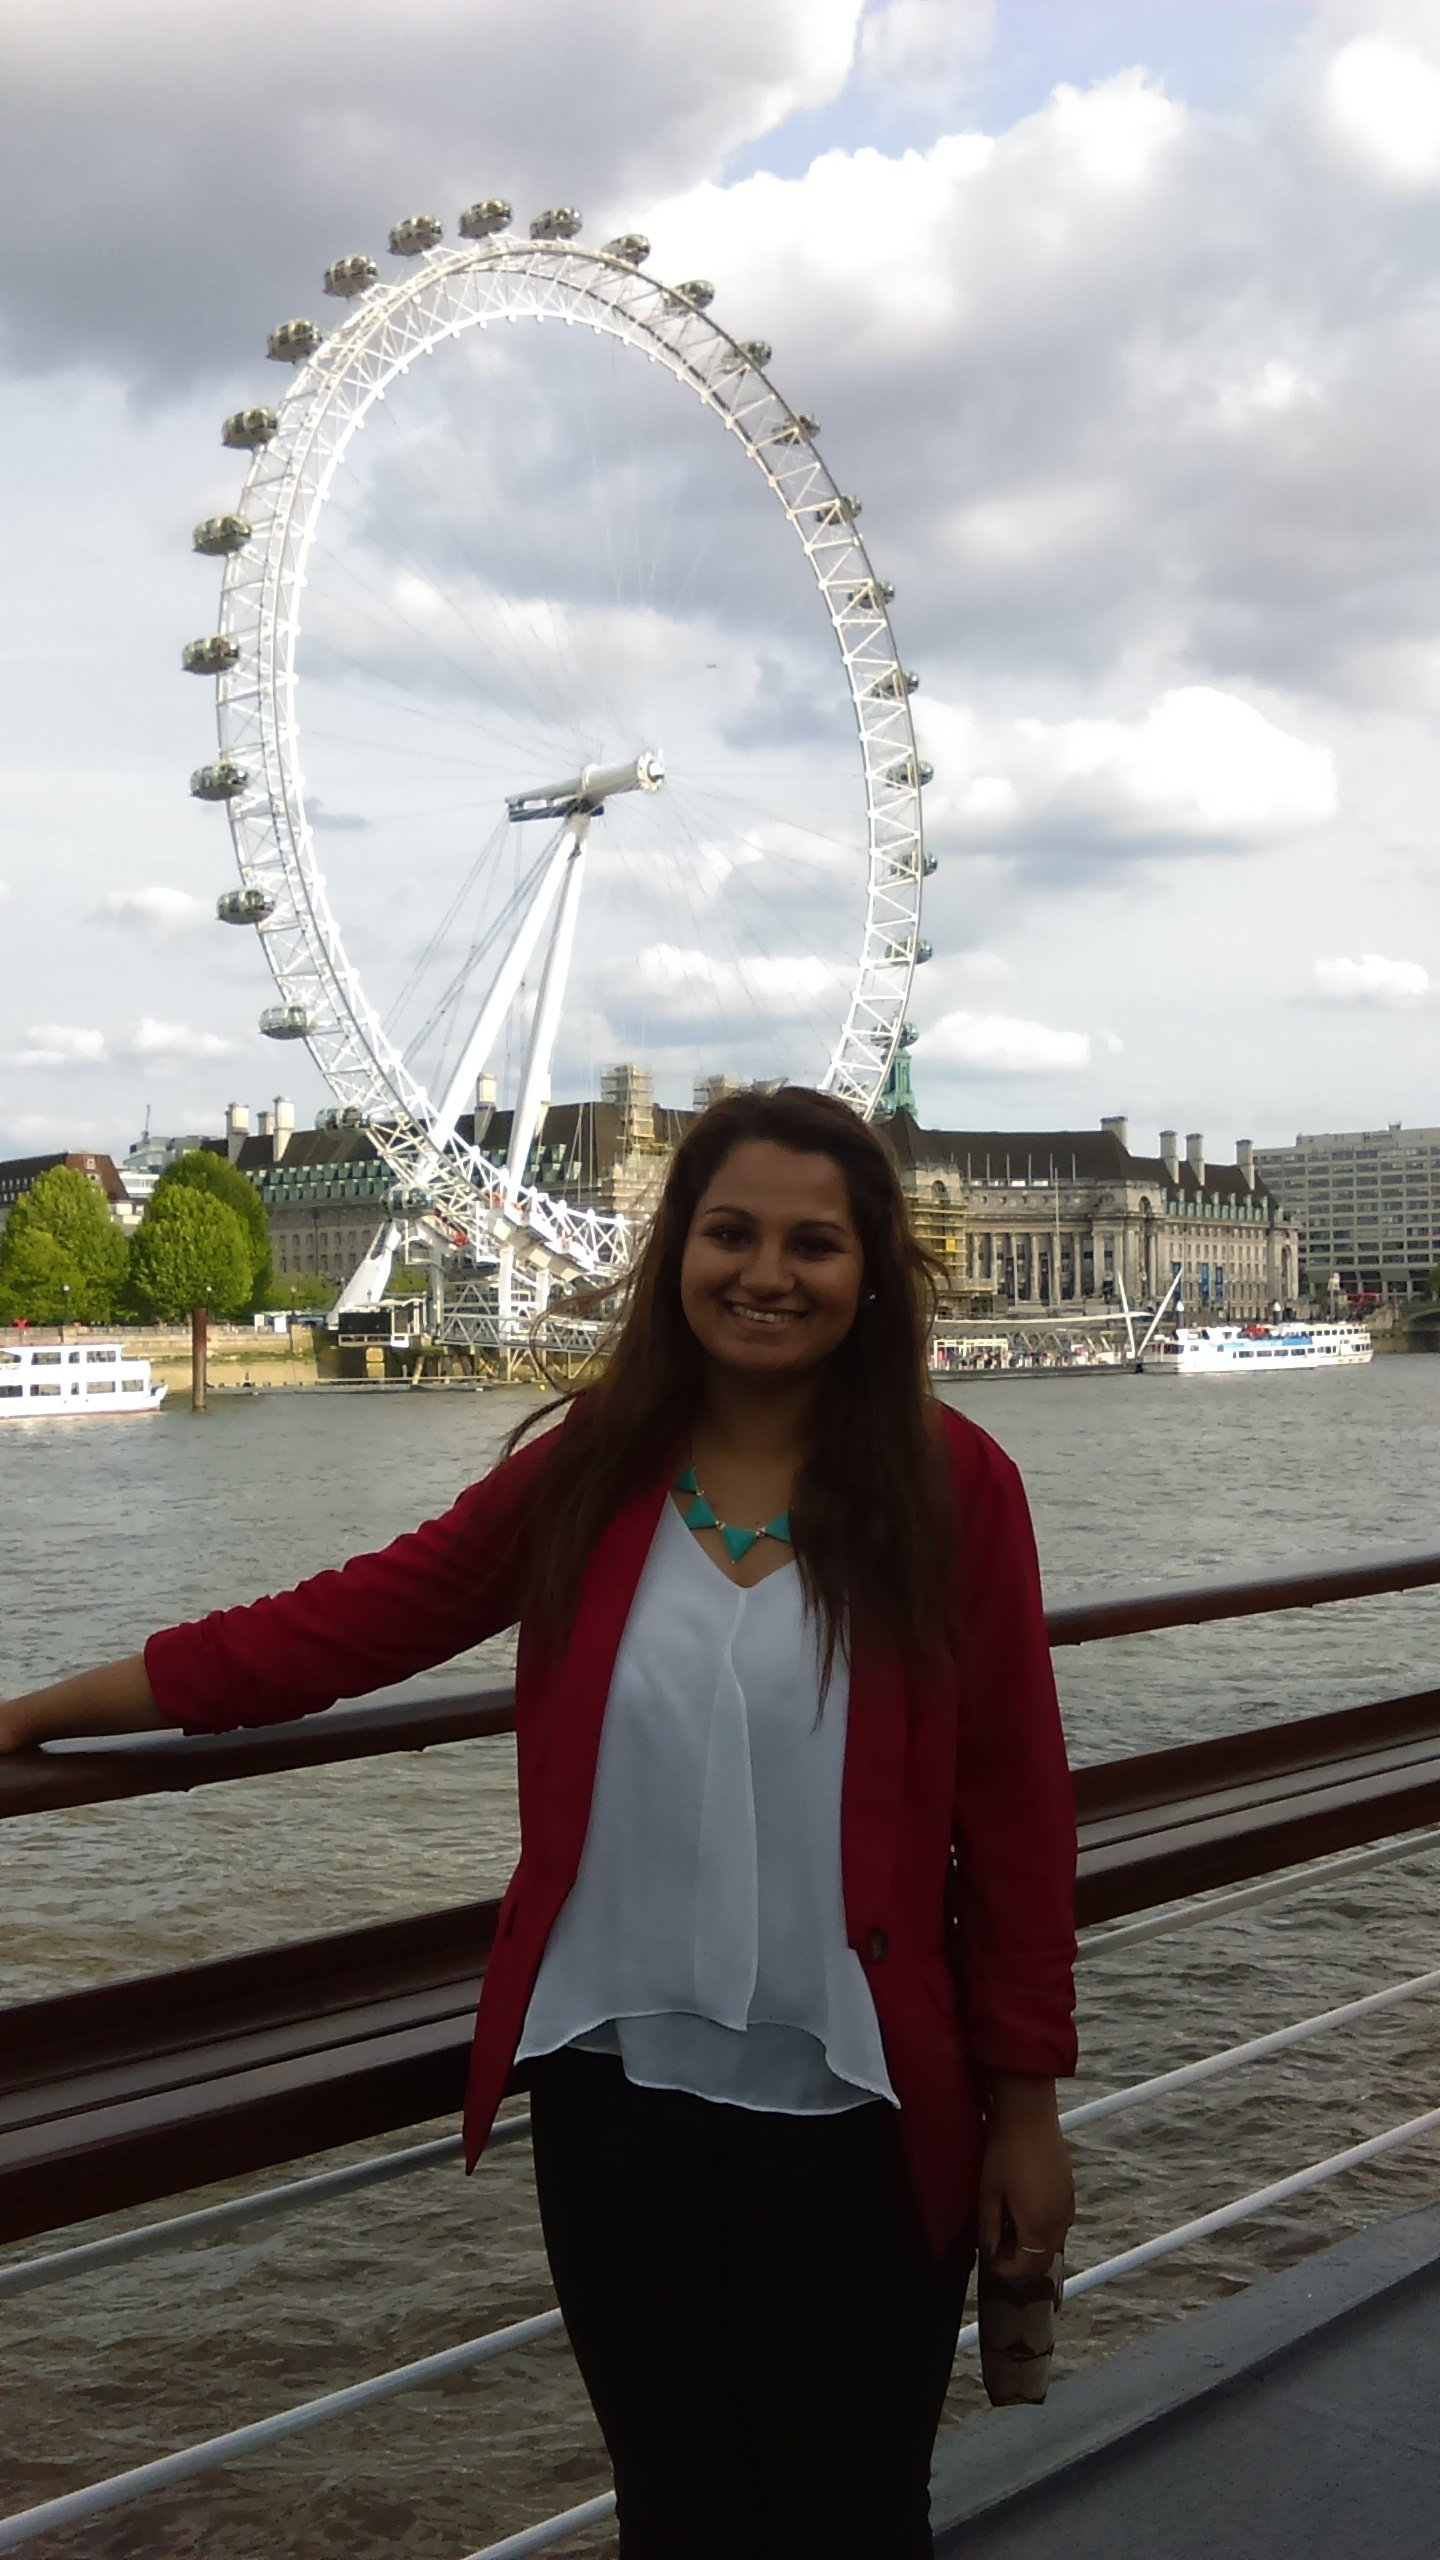 CAPAStudyAbroad_London_Summer2015_From_Roshni_Patel_-_London_Eye